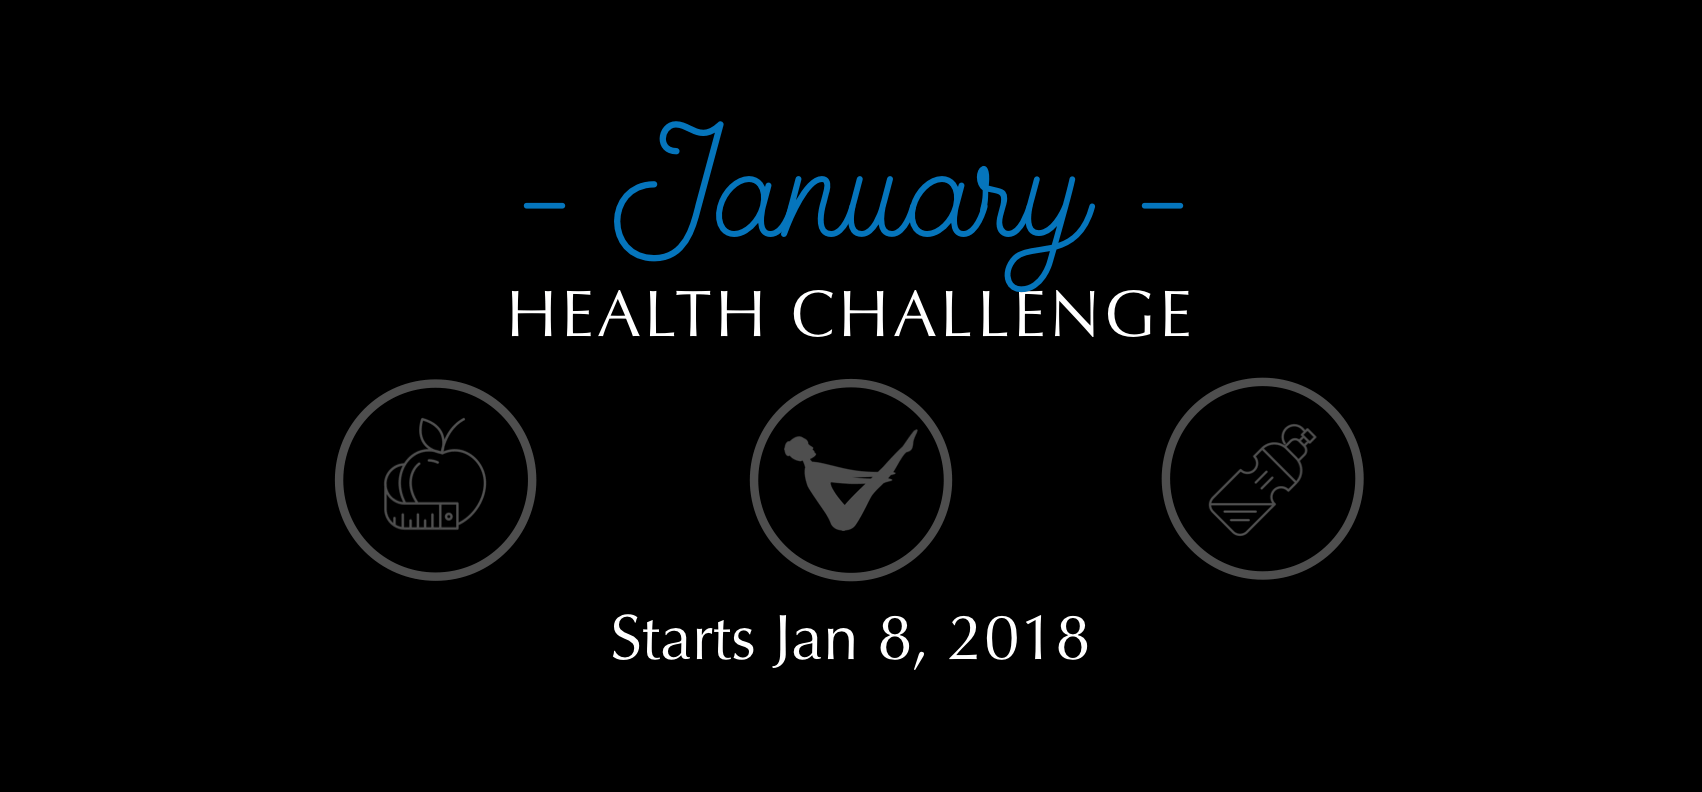 Beginning January 8th we will post daily challenges on our social media channels. Follow the directions and post on your social media channels with the hashtag #platinumchiropractic for your chance to win some pretty great prizes